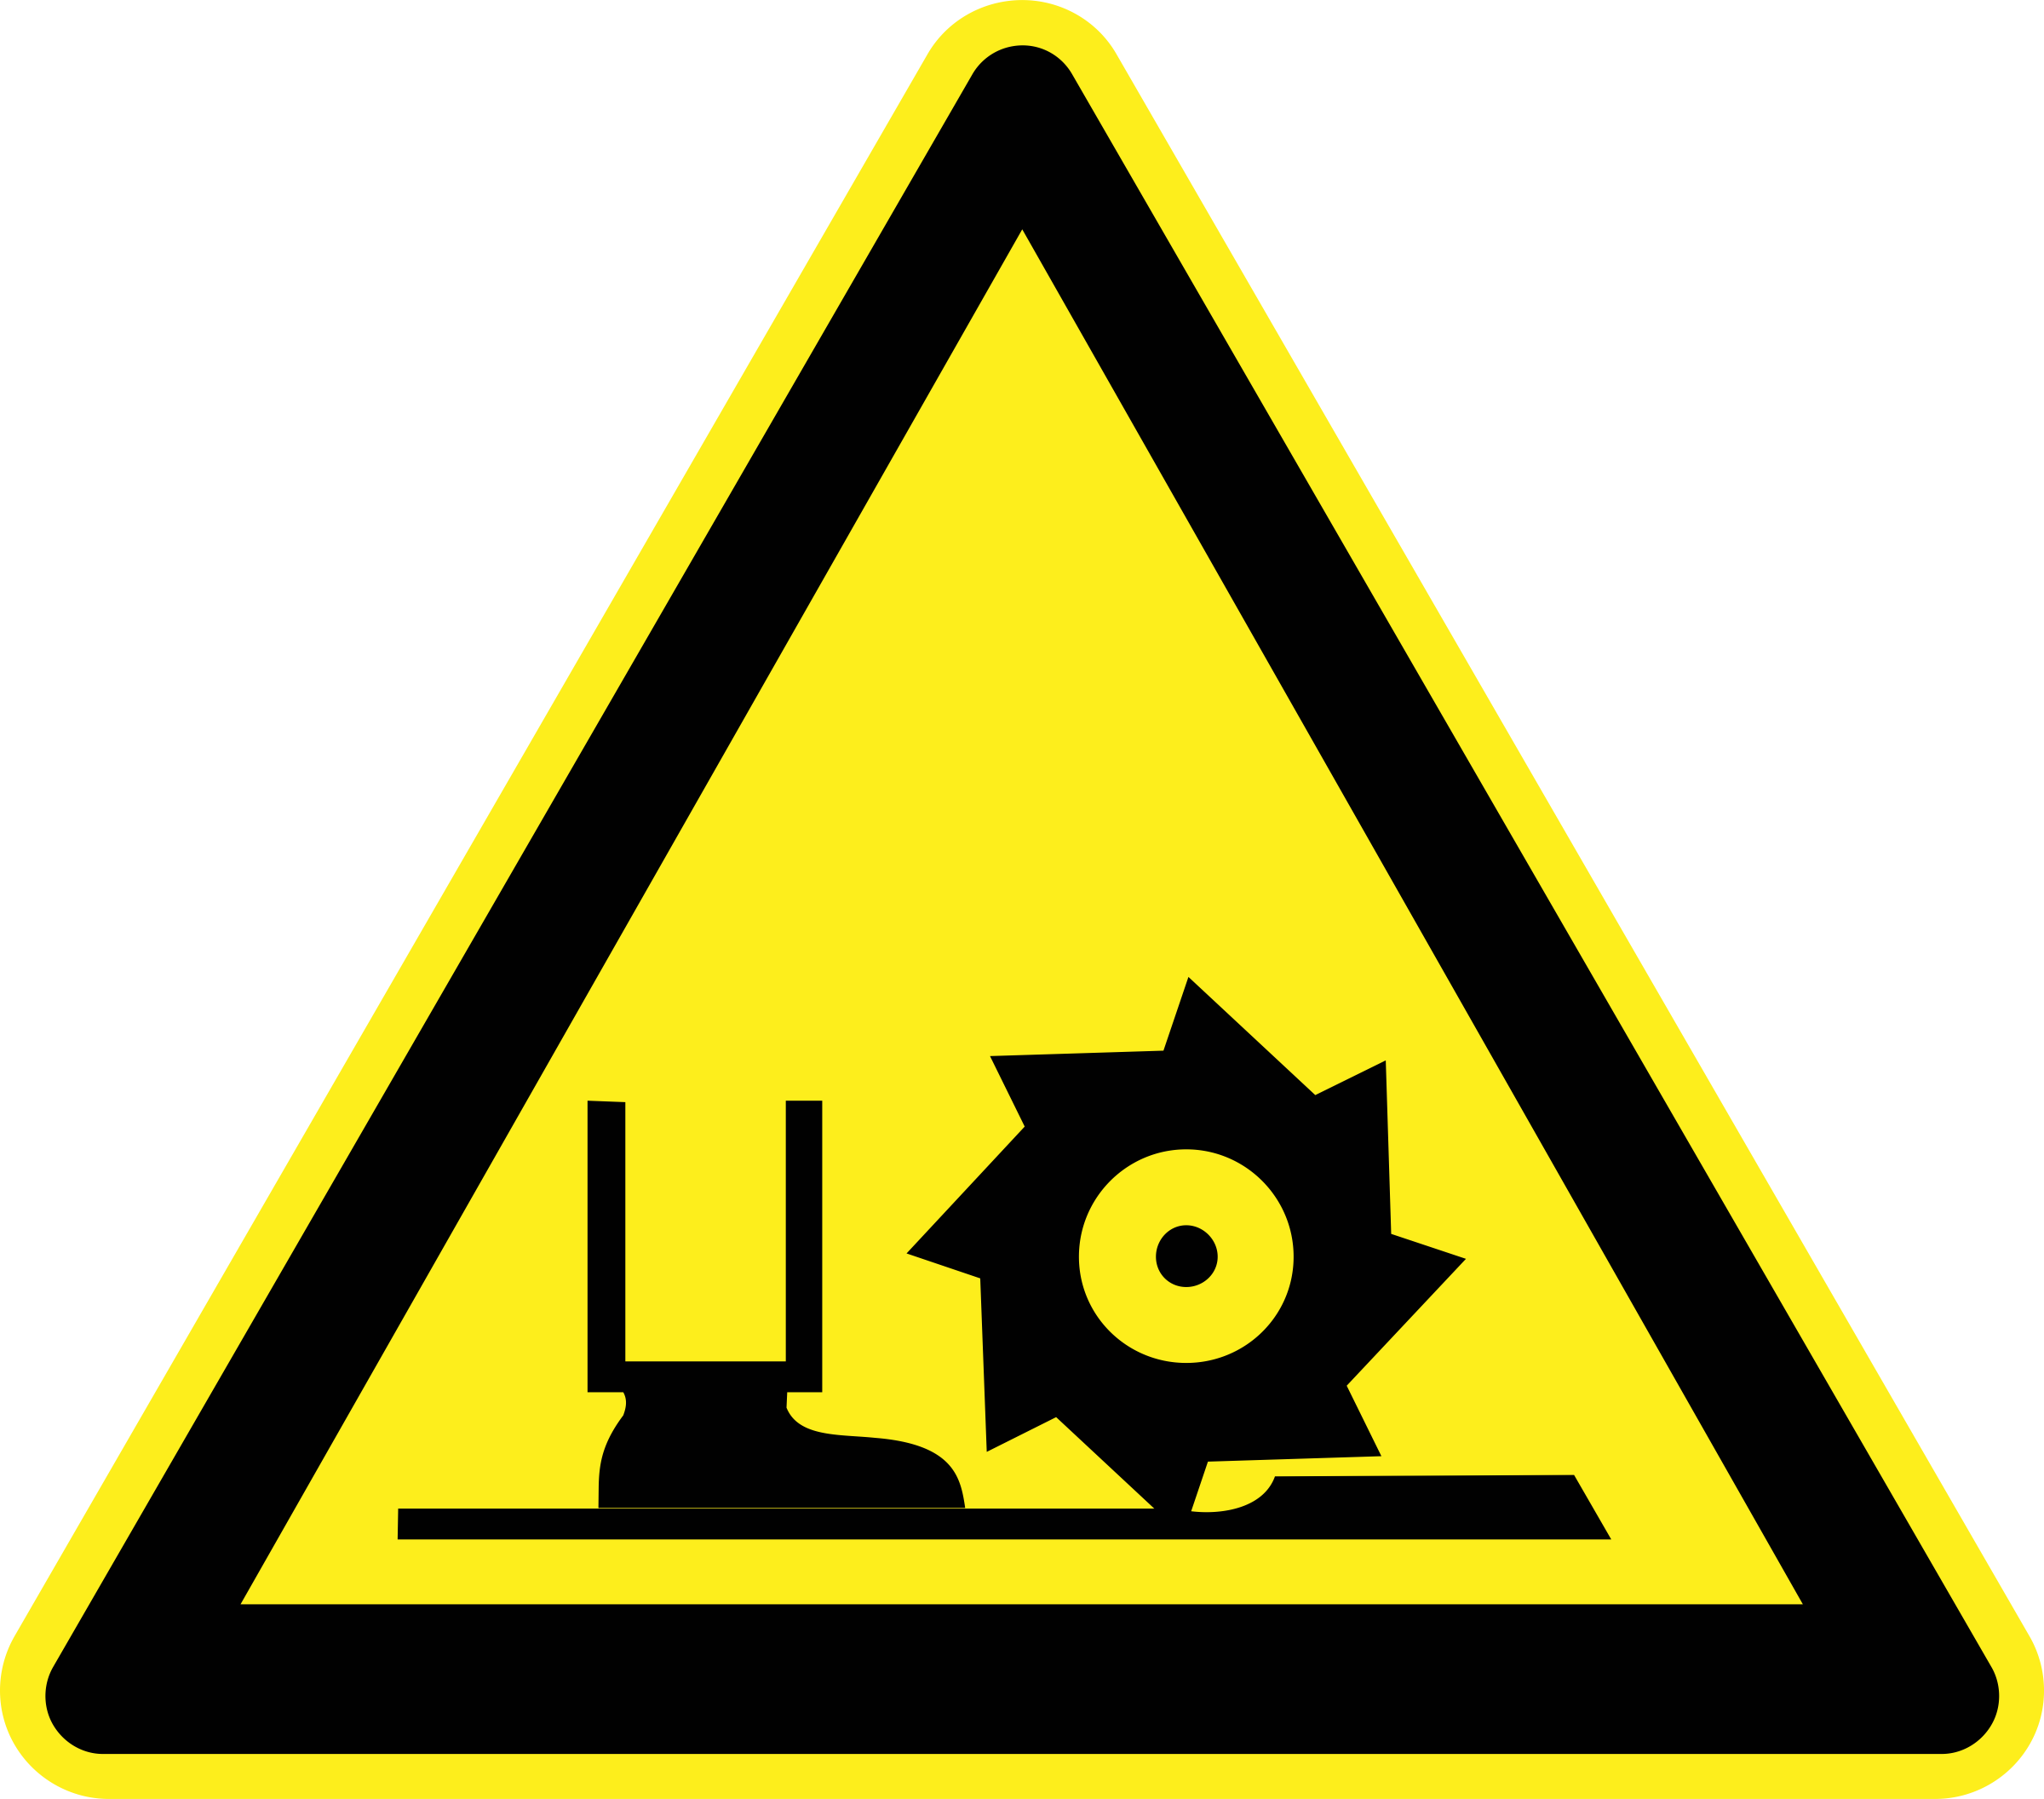 Danger Cutter Toe Loss Warning Sign by h0us3s